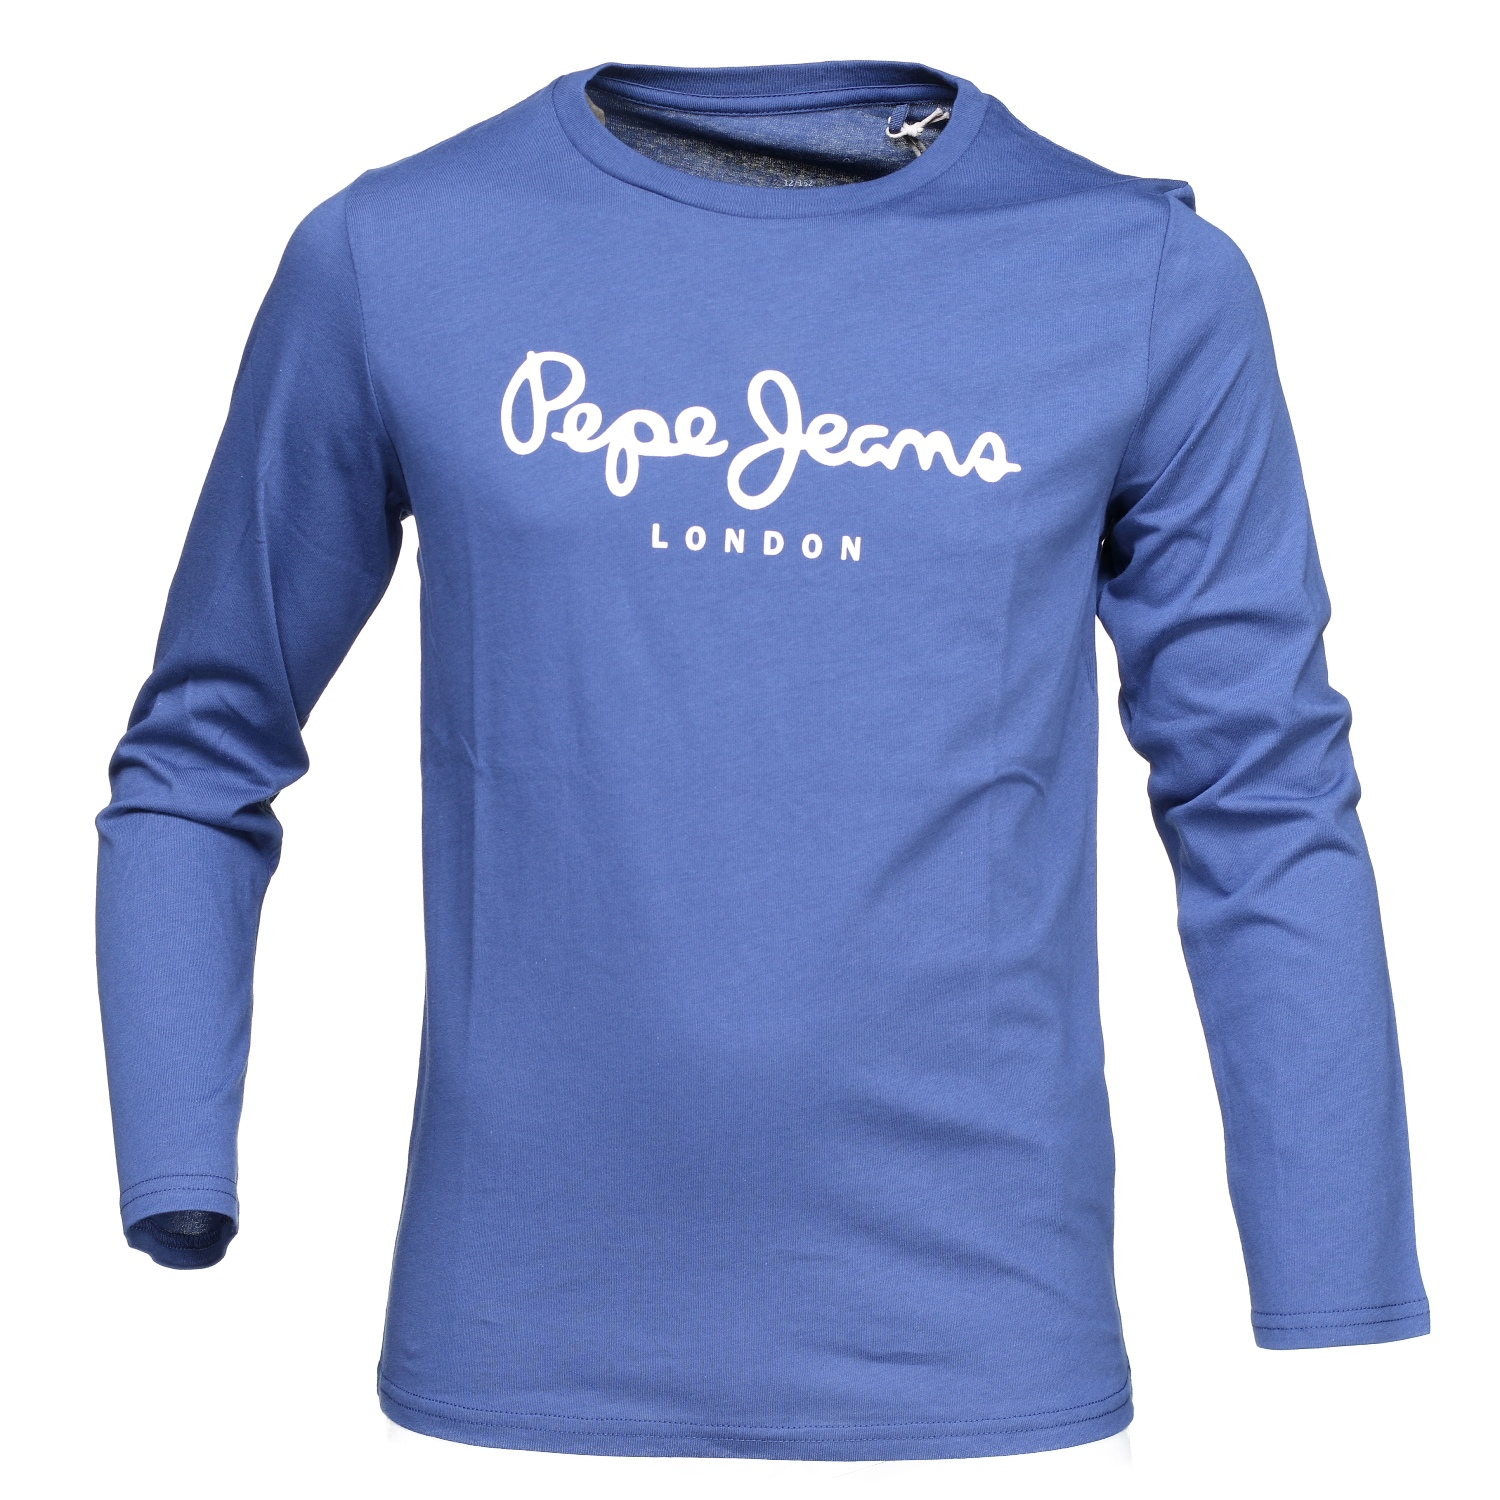 http://www.leadermode.com/126203/pepe-jeans-new-herman-jr-pb501010-560-factory-blue.jpg